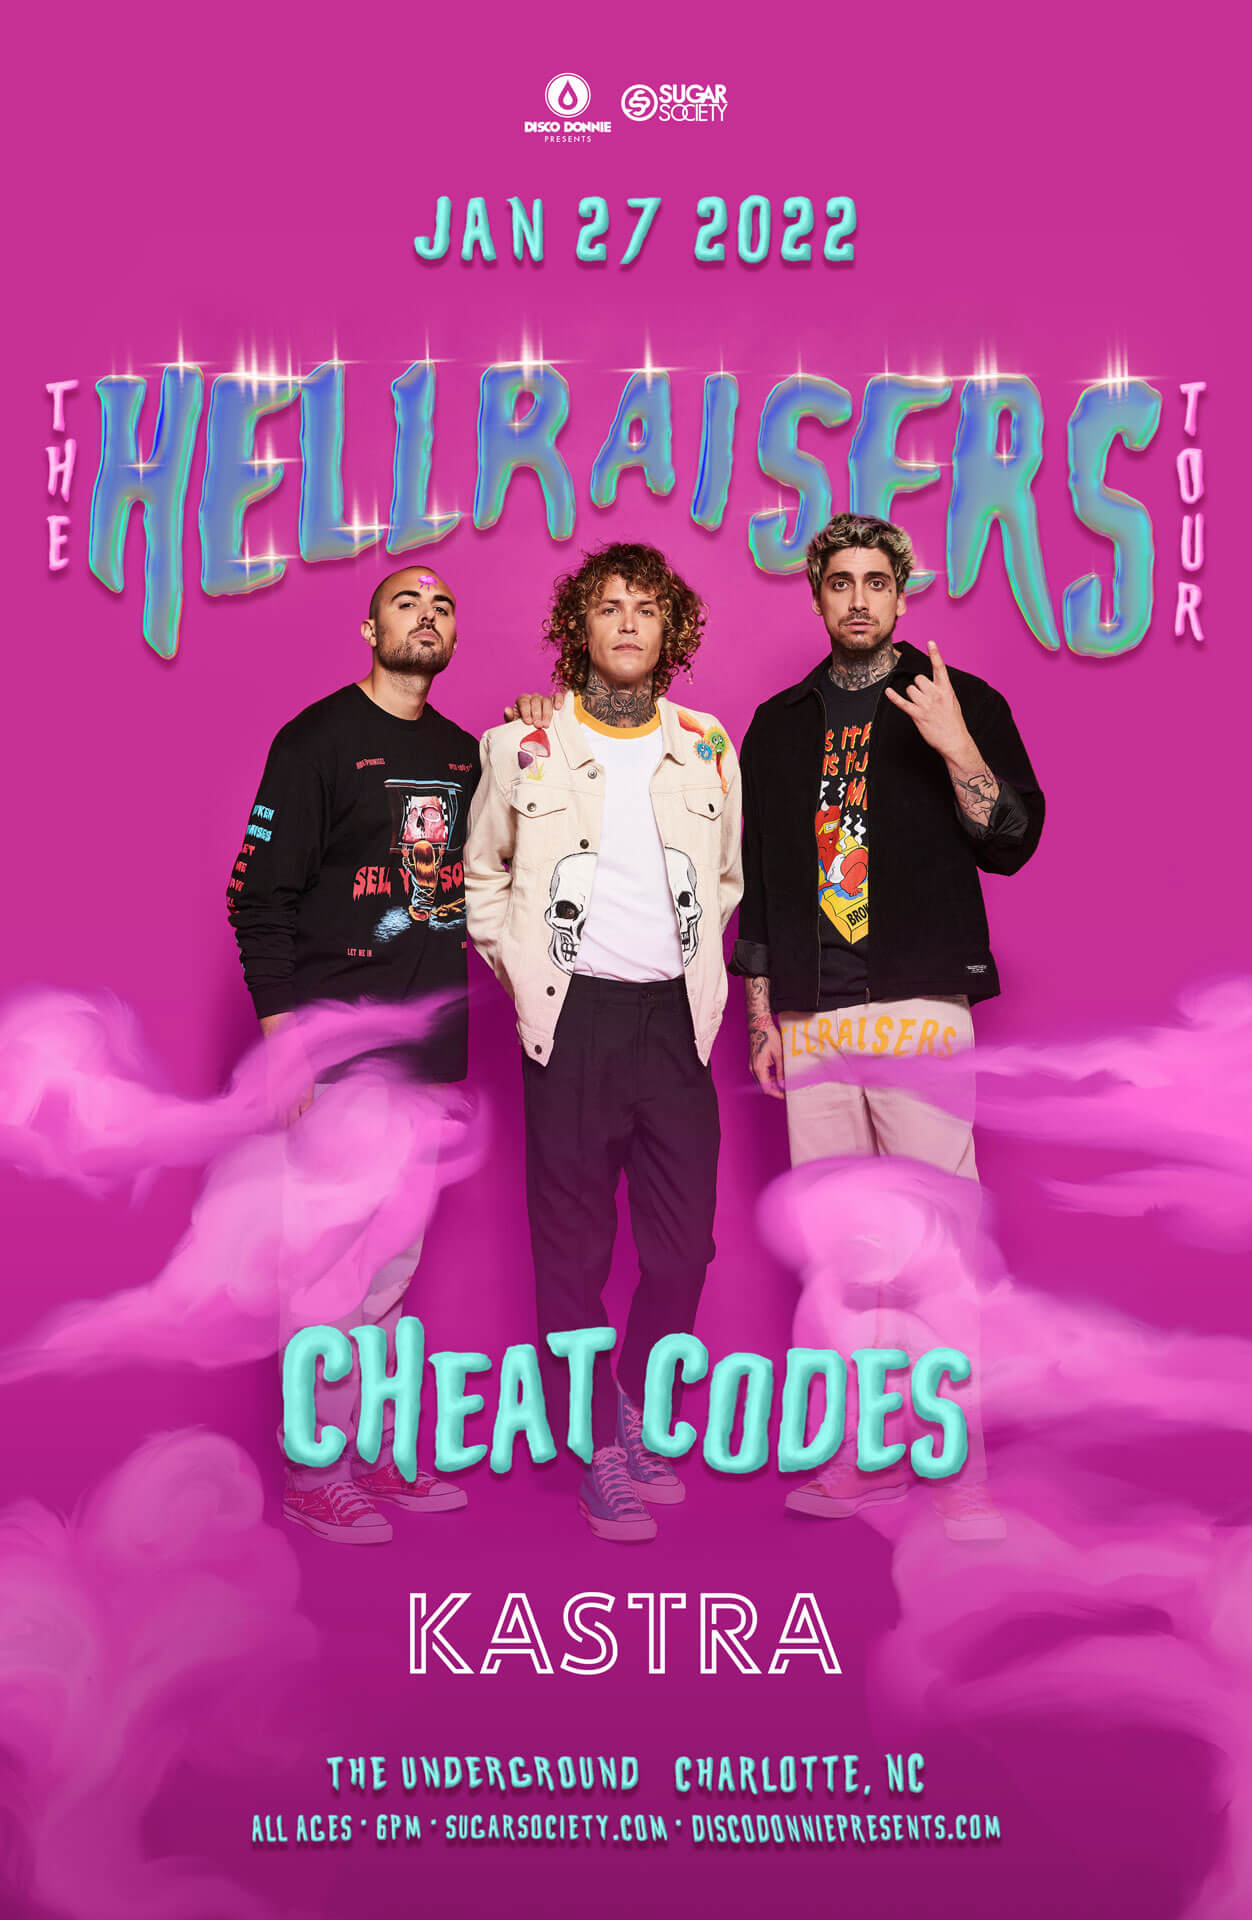 Cheat Codes, Kastra in Charlotte